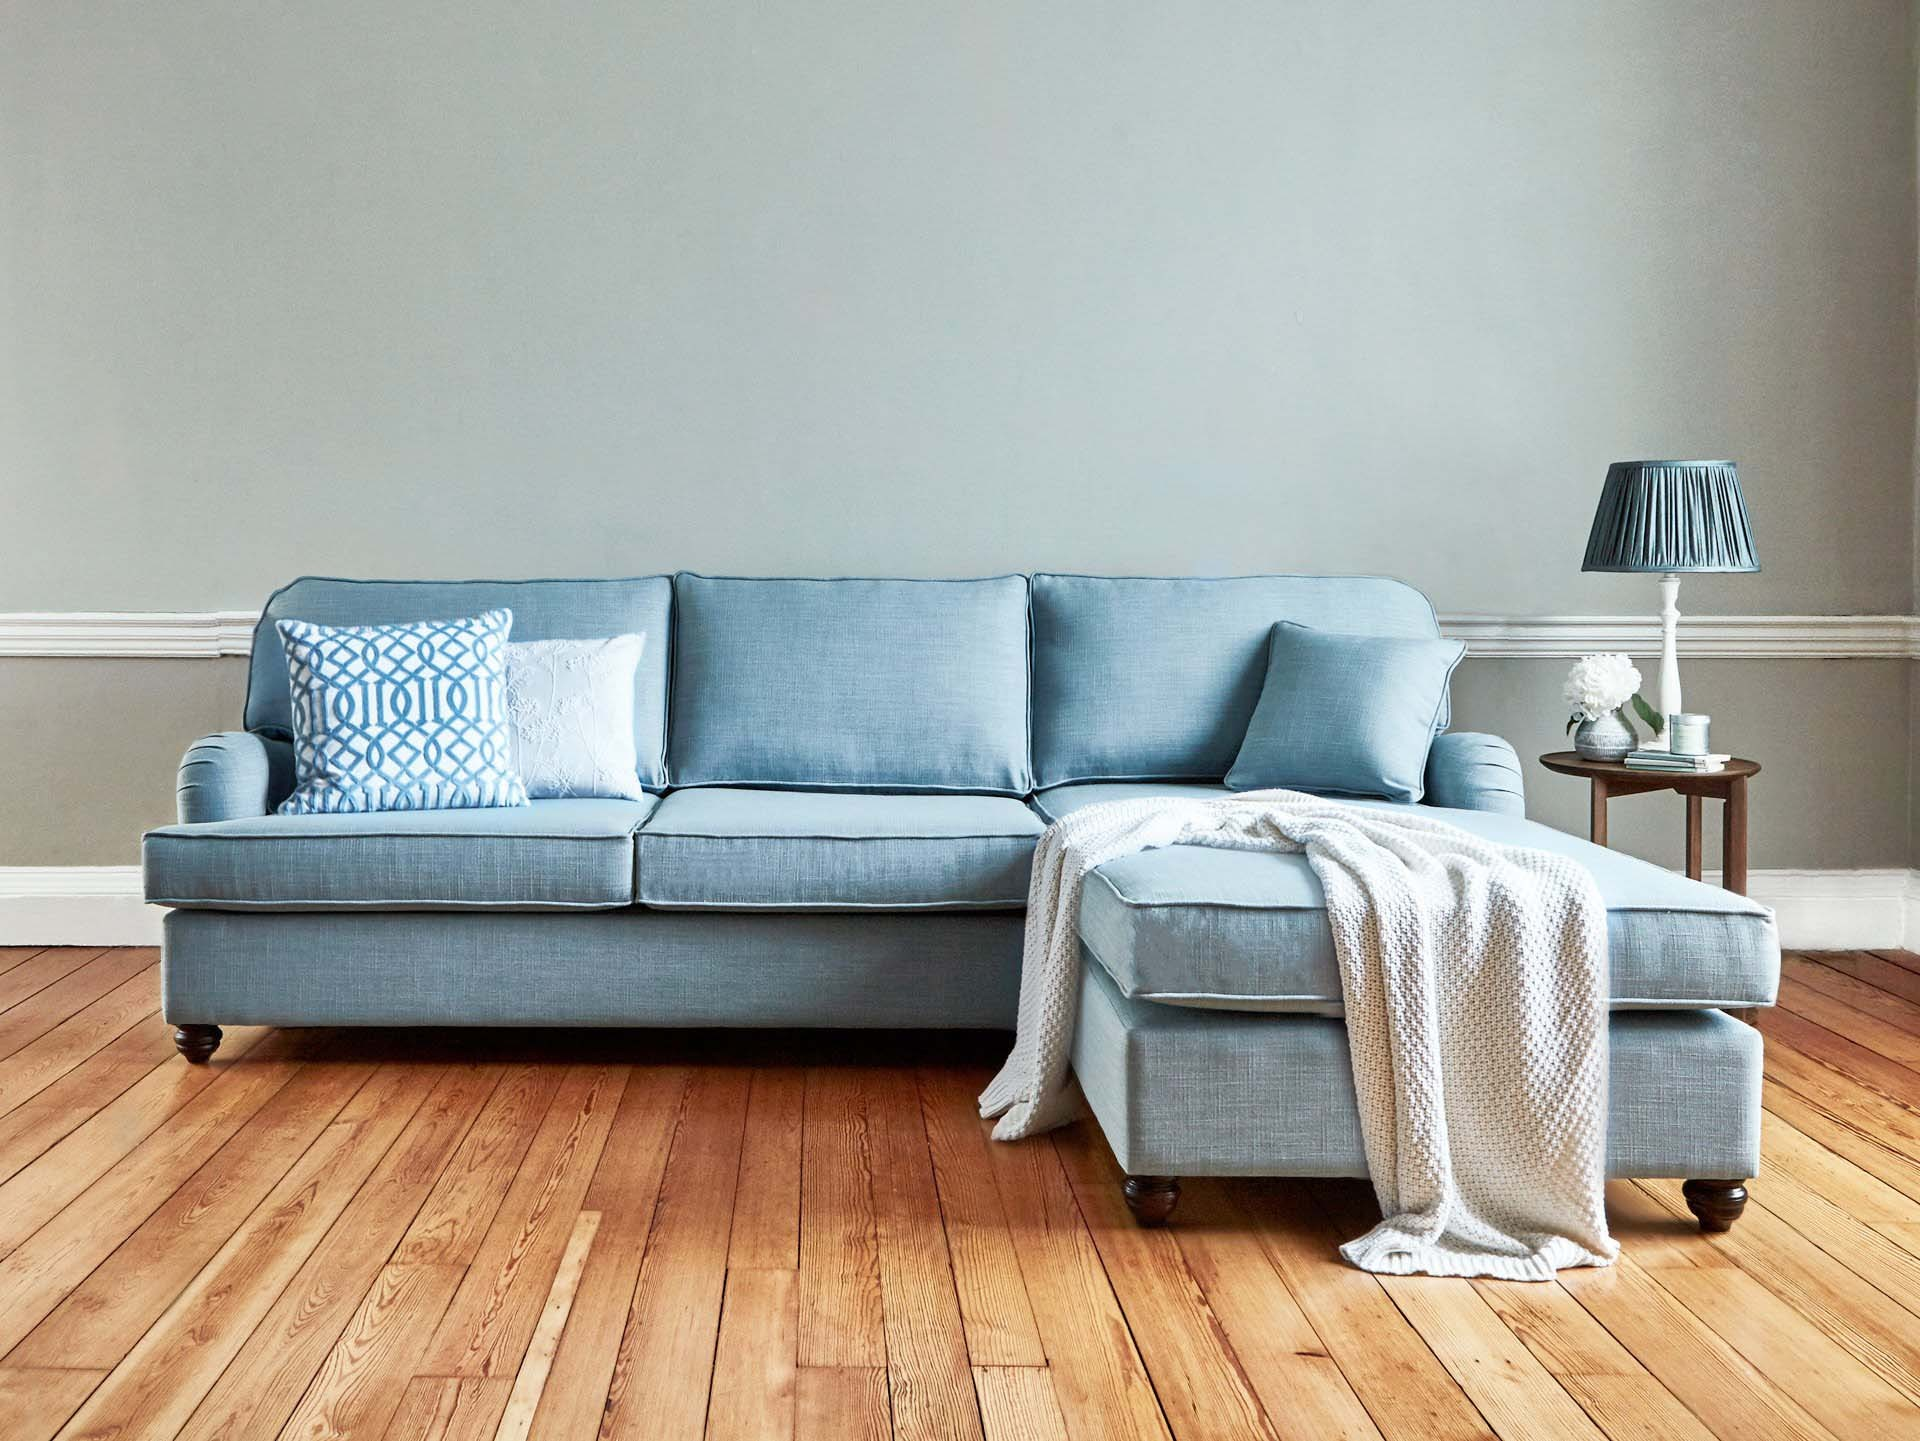 This is how I look in House  Linen Vintage Blue as a right side chaise with reflex foam seat cushions